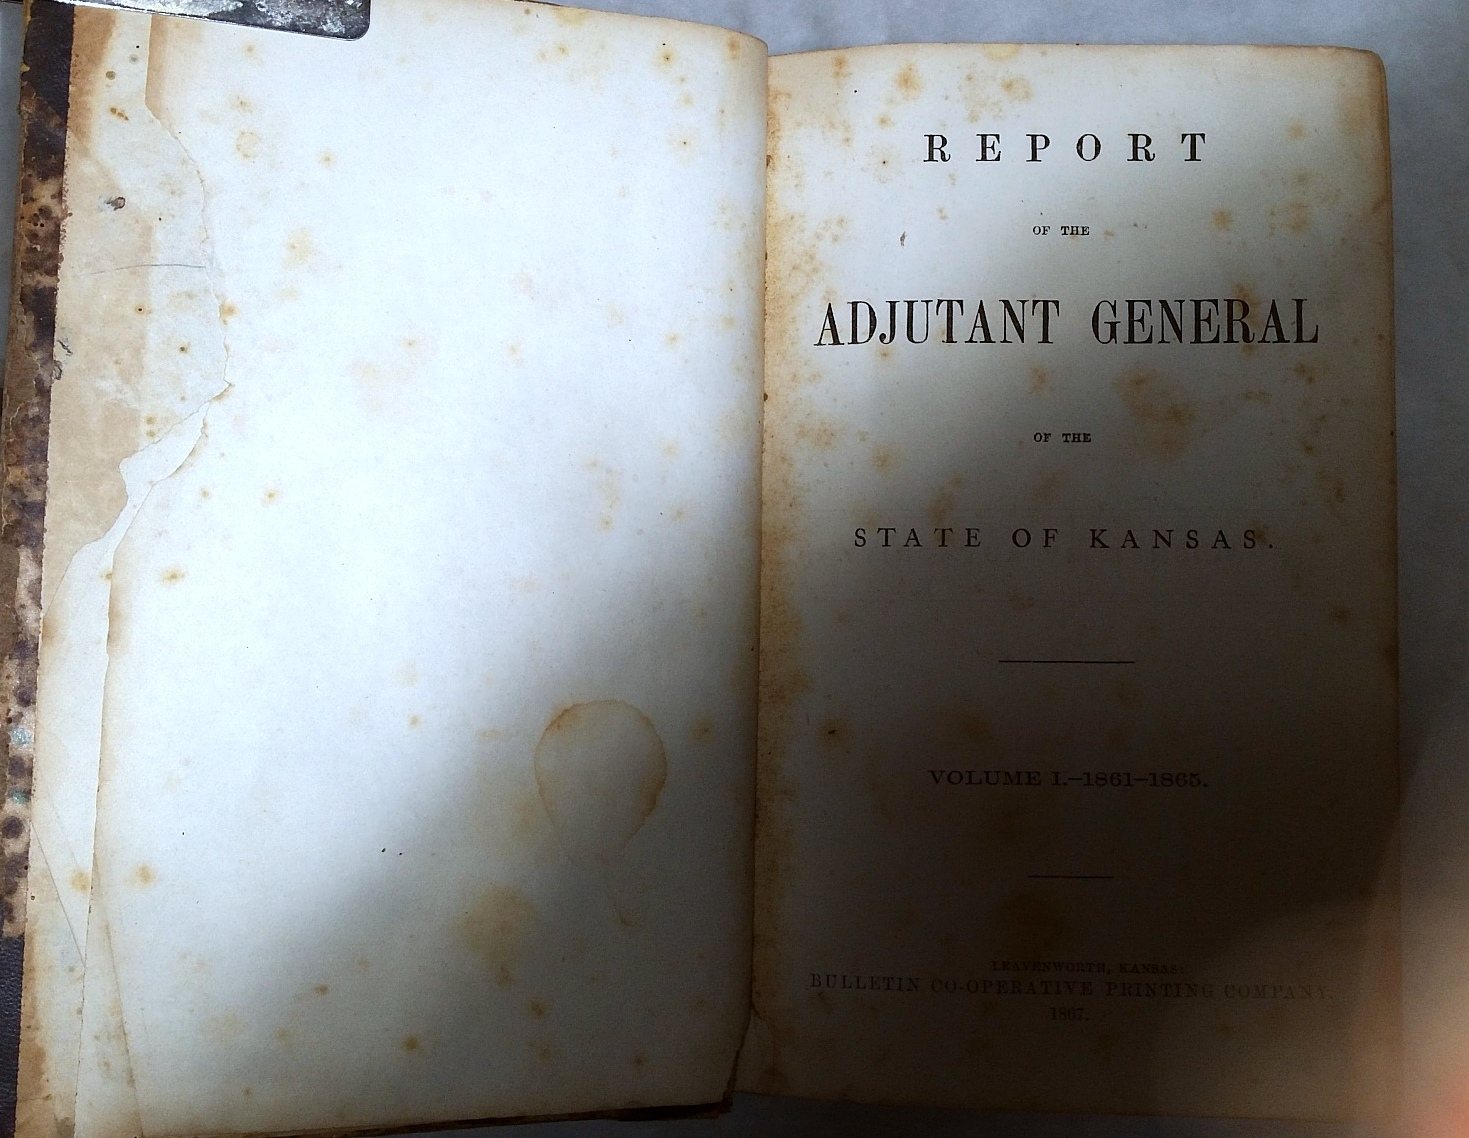 Image for Report of the Adjutant General of the State of Kansas. Volume I. - 1861-1865